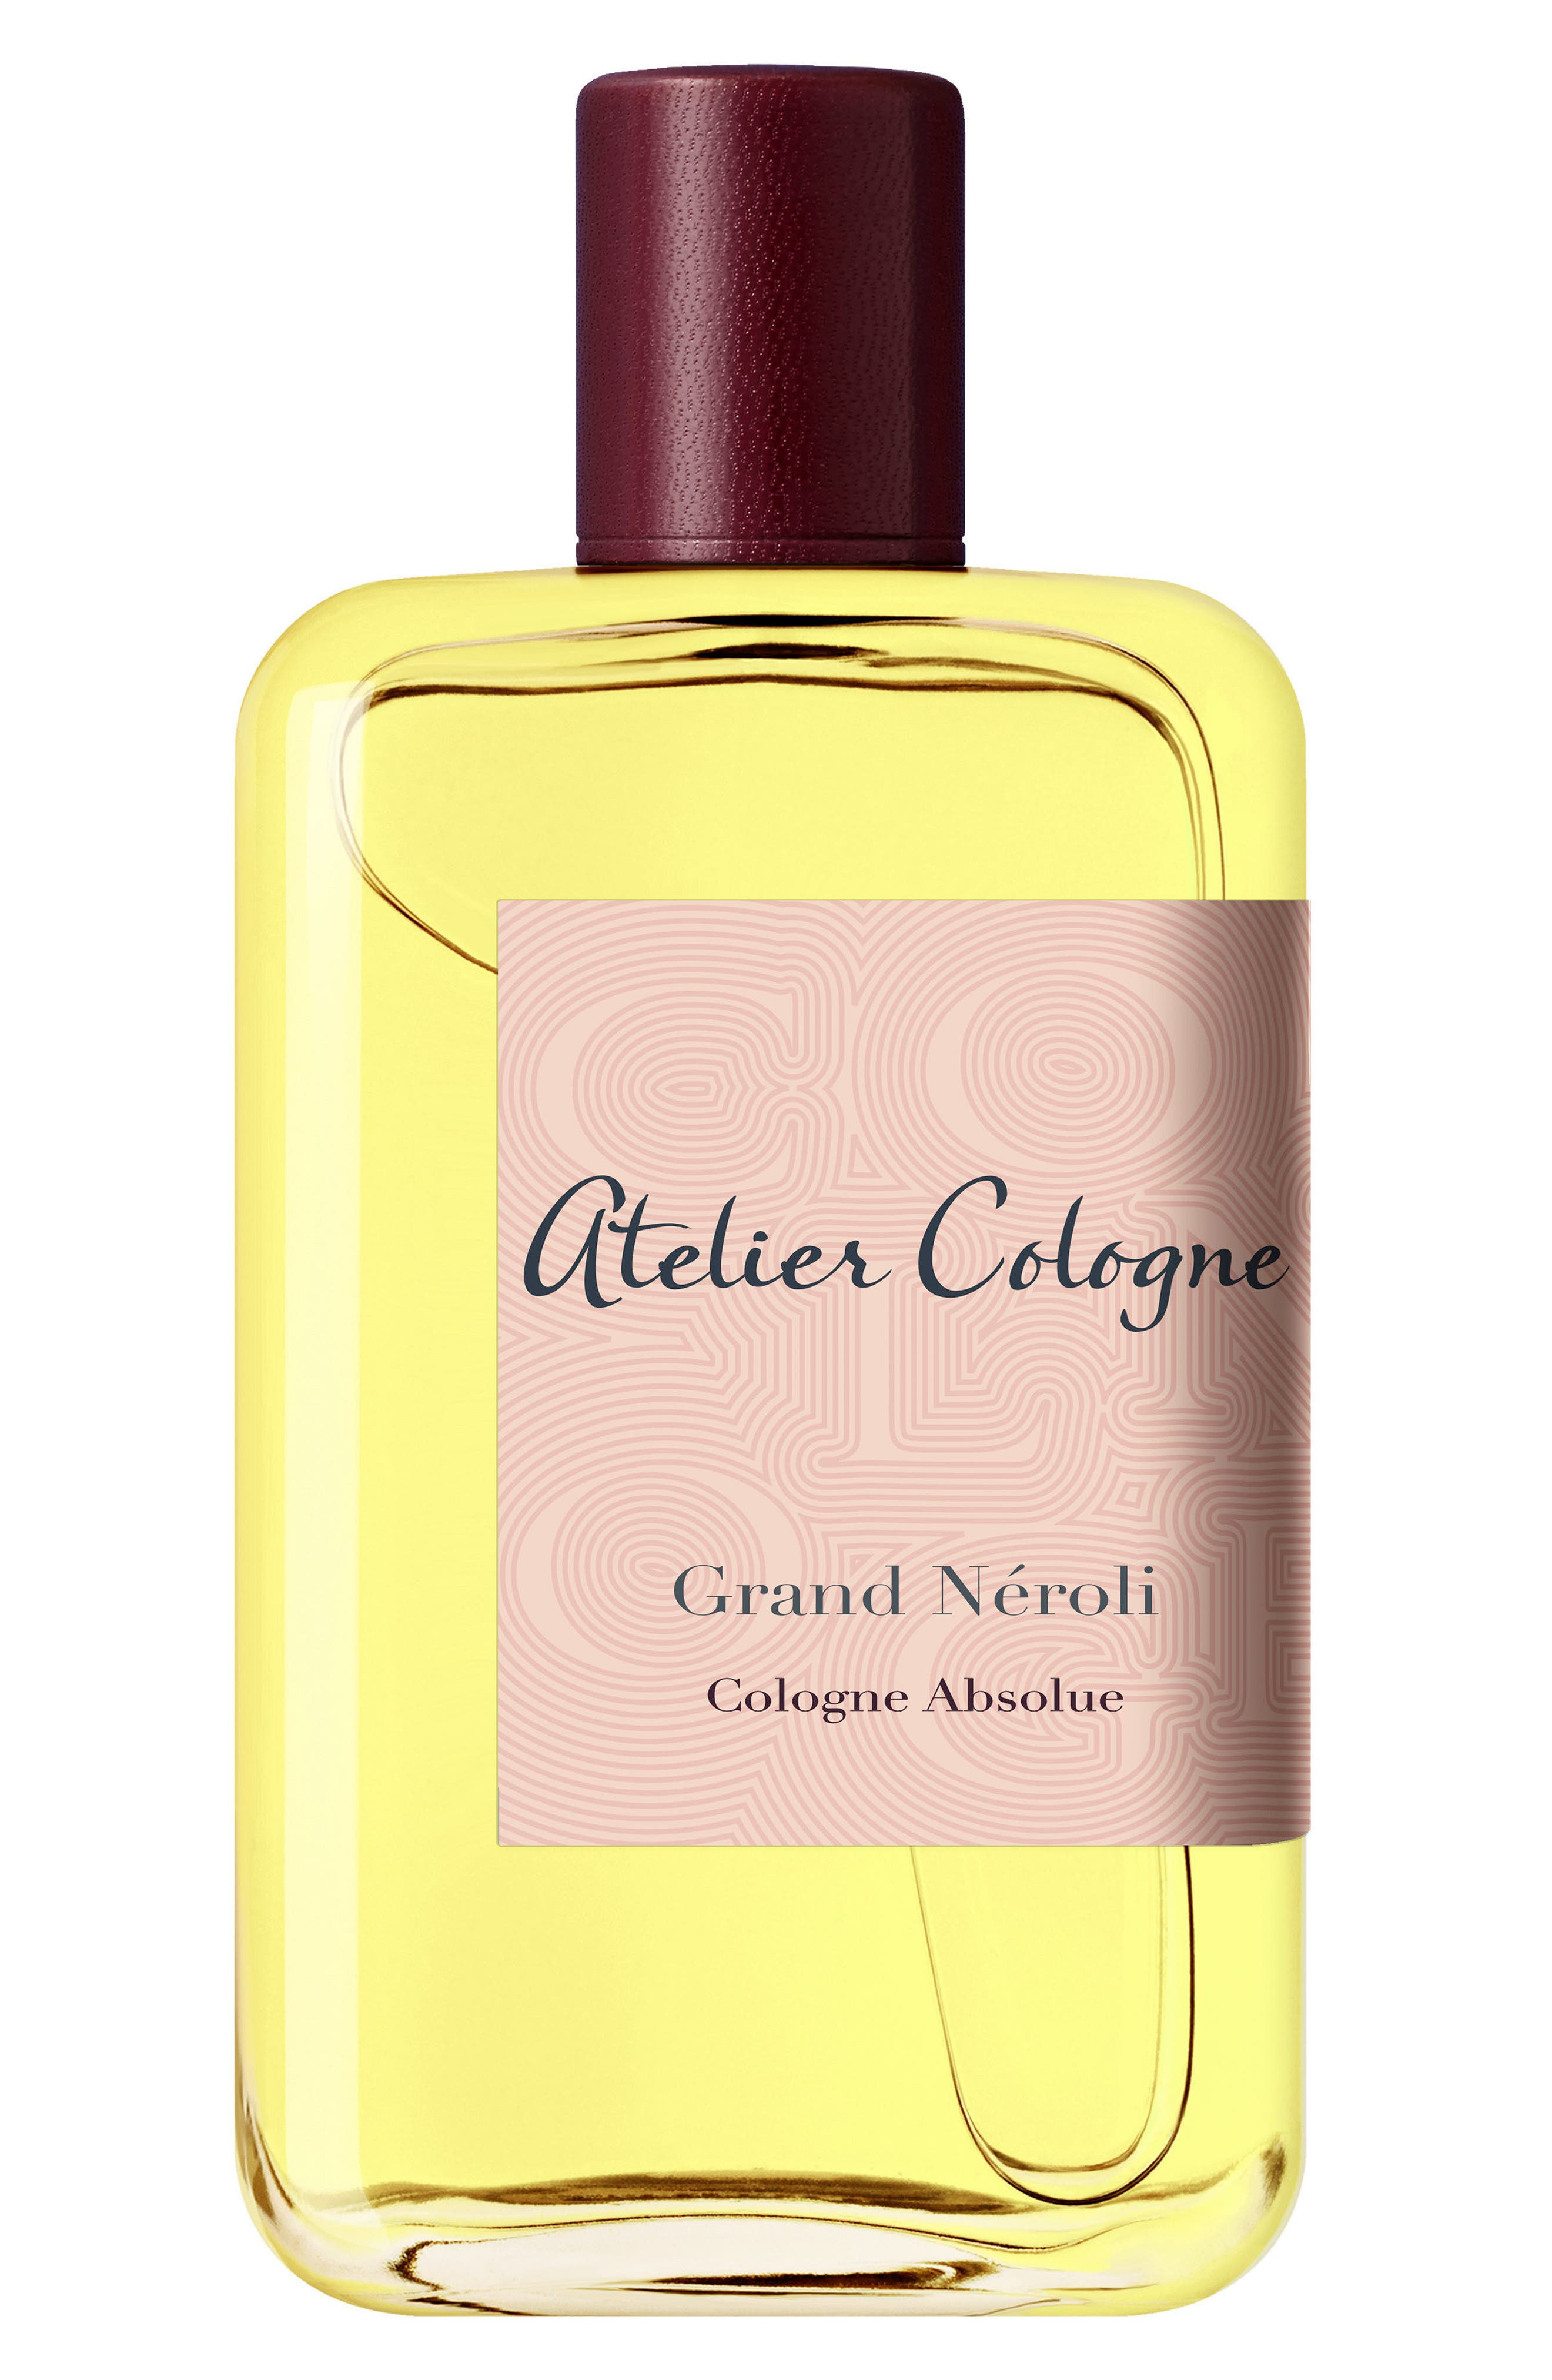 Atelier Cologne Grand Néroli Cologne Absolue